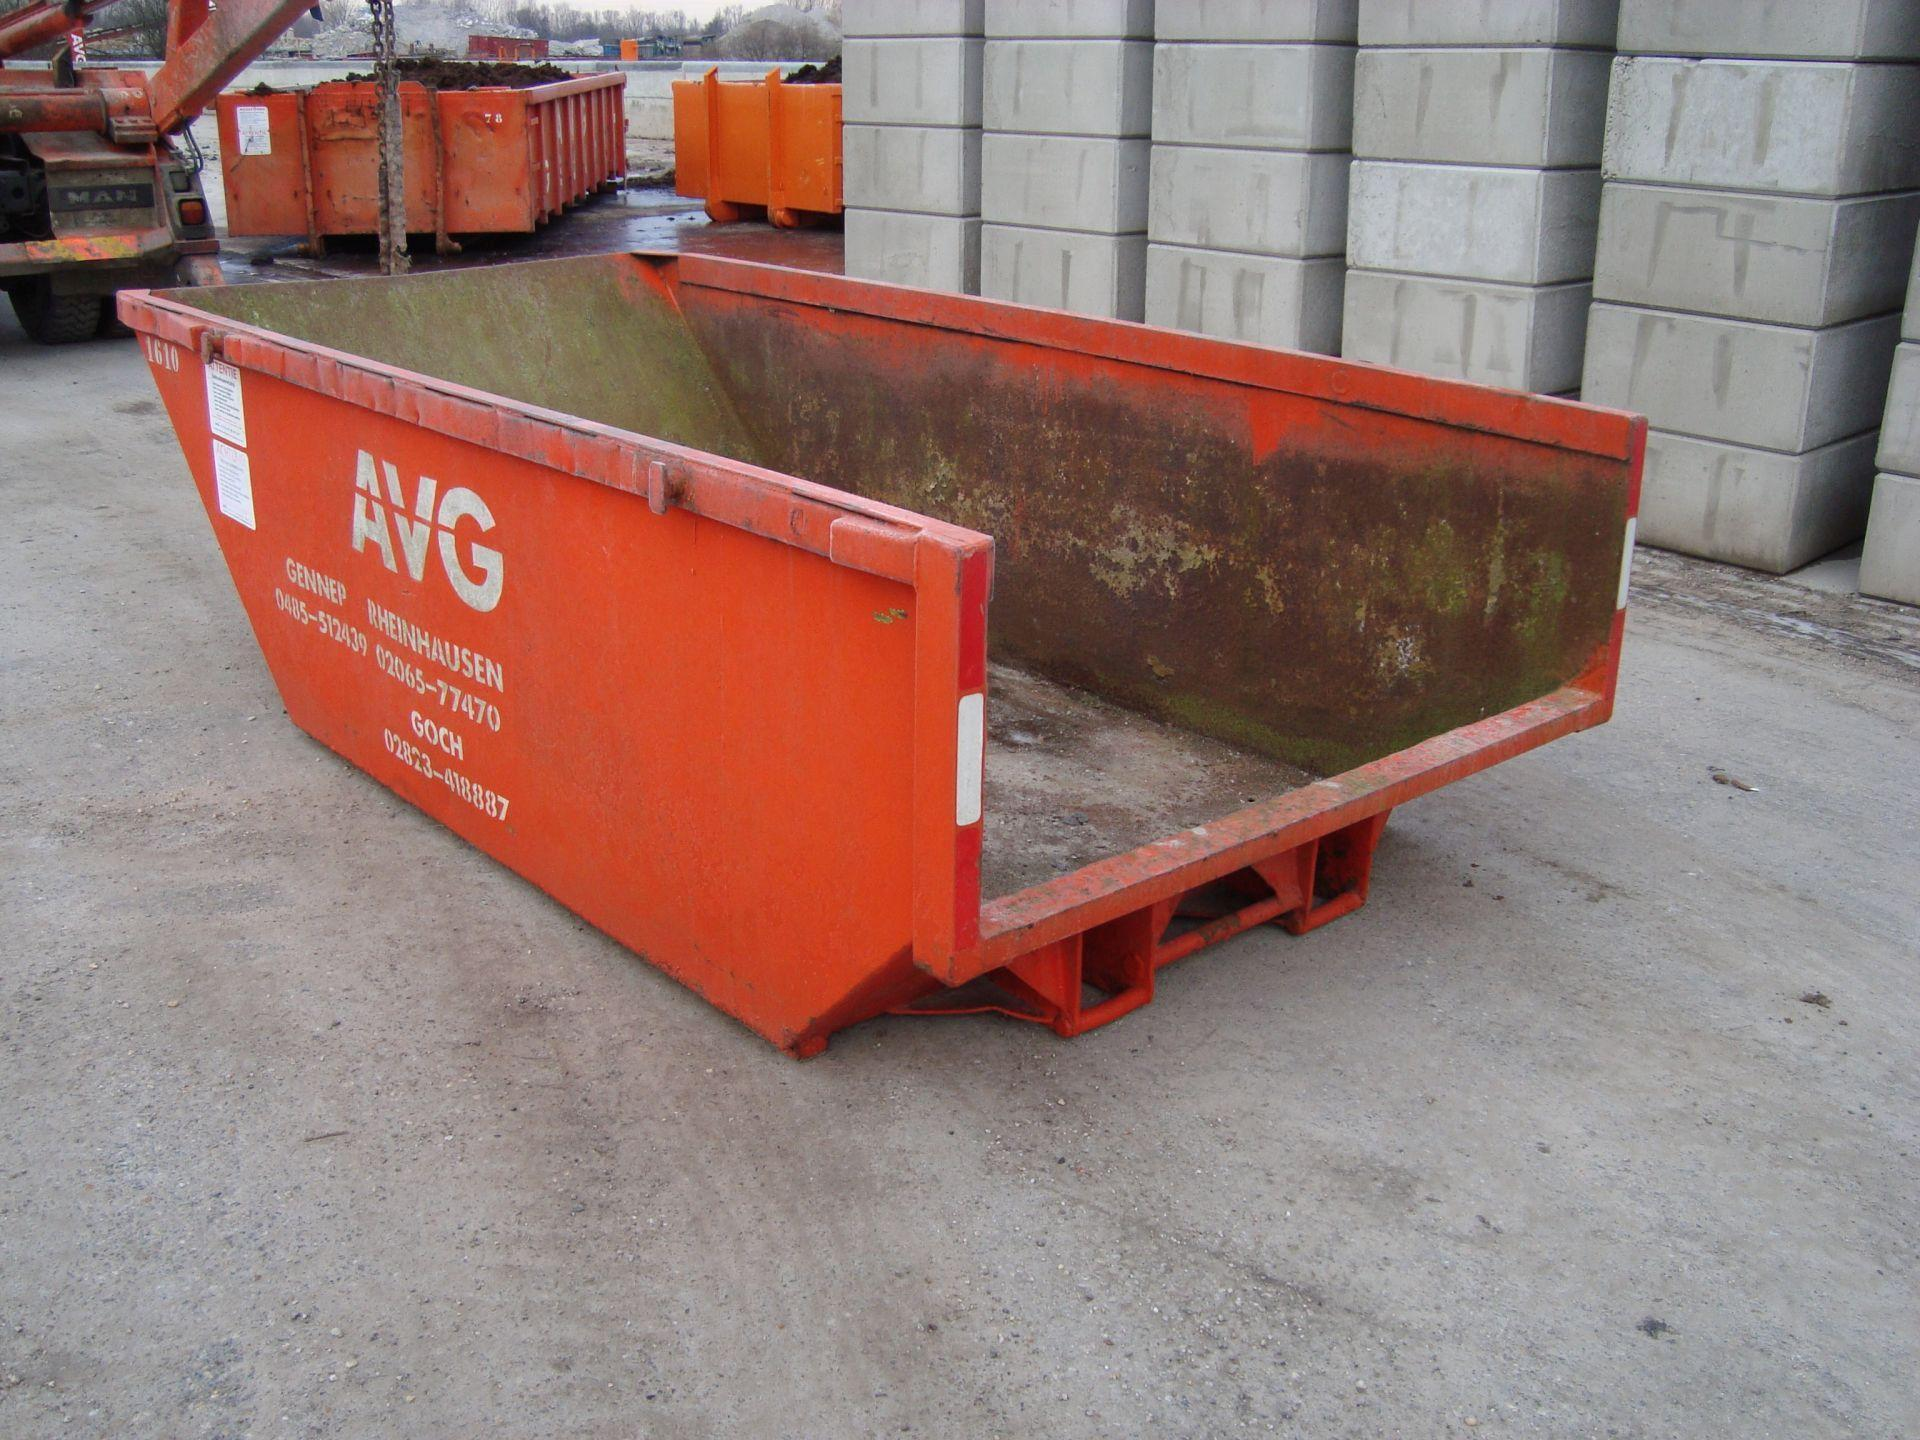 midden-container-3-avg-bouwstoffen